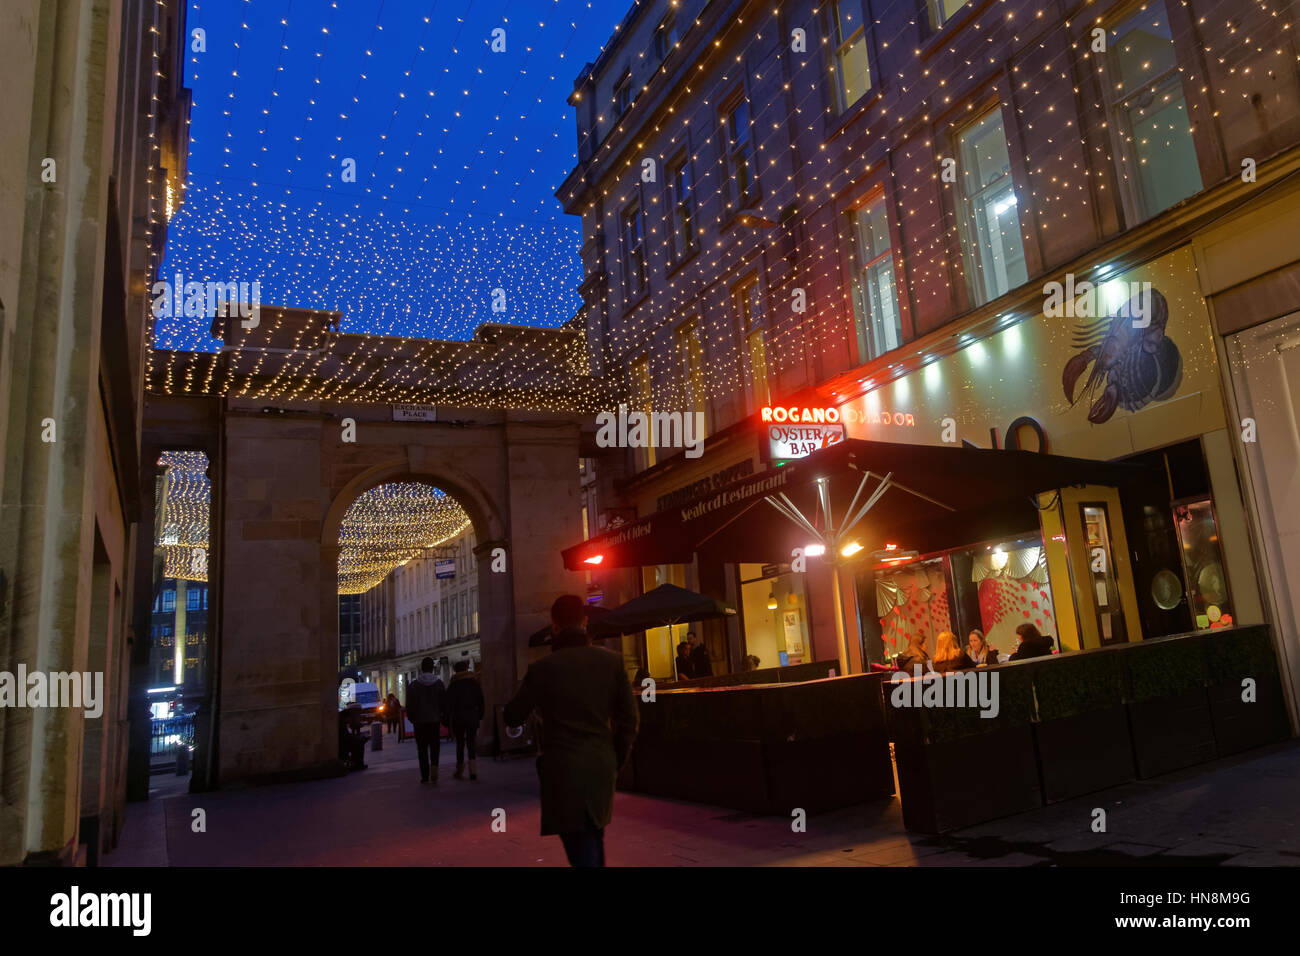 Rogano seafood restaurant to the stars in Glasgow Scotland famous for its cuisine - Stock Image